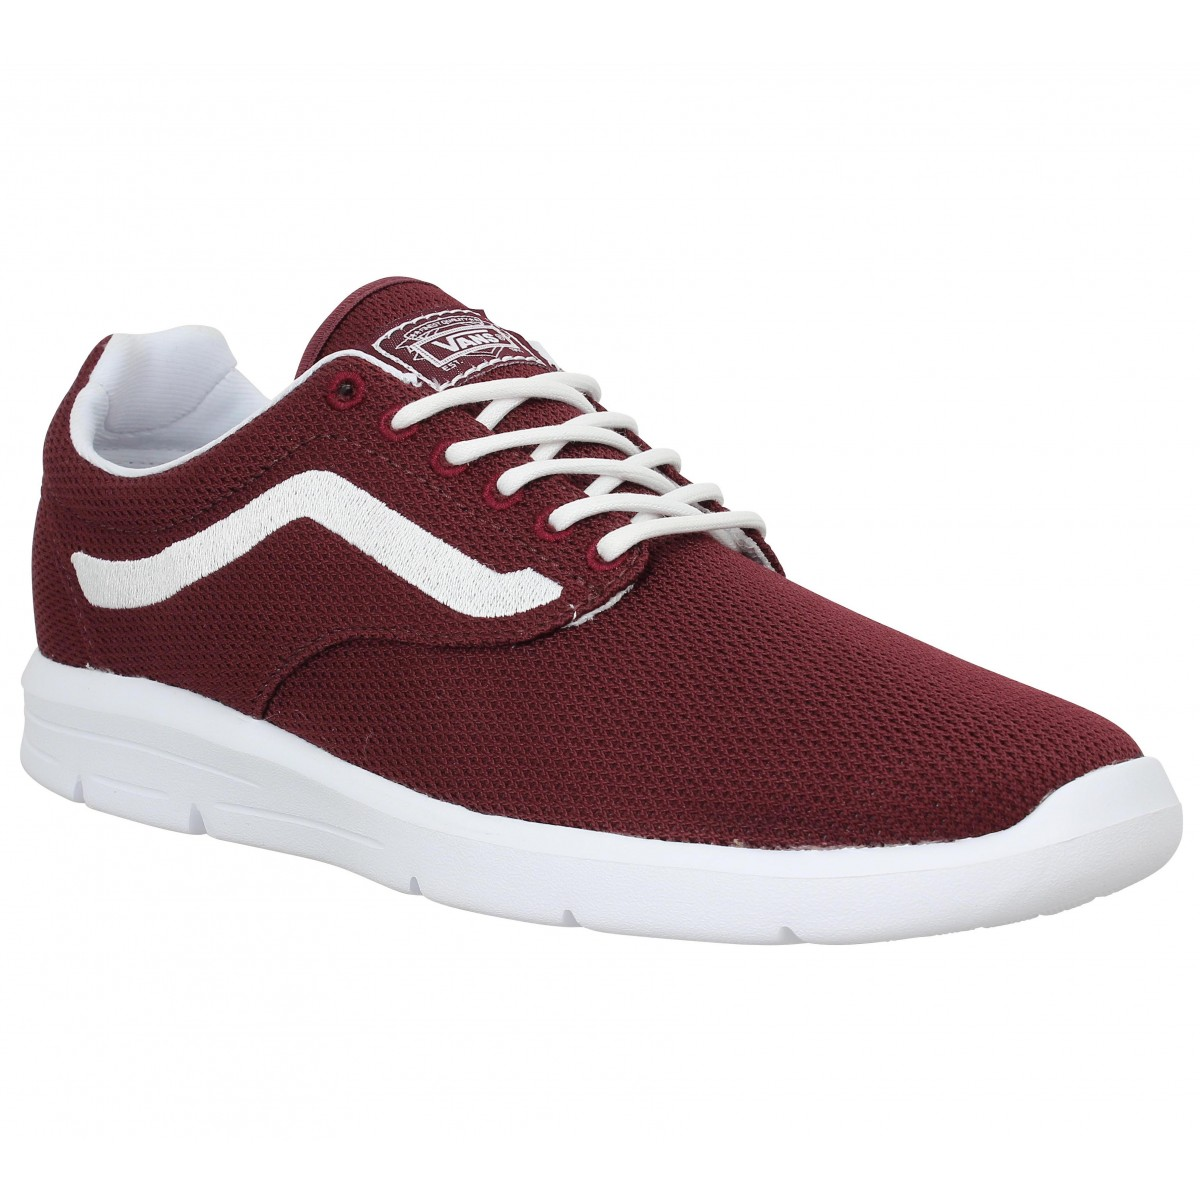 Vans Marque Iso 1.5 Homme-40-port Royal